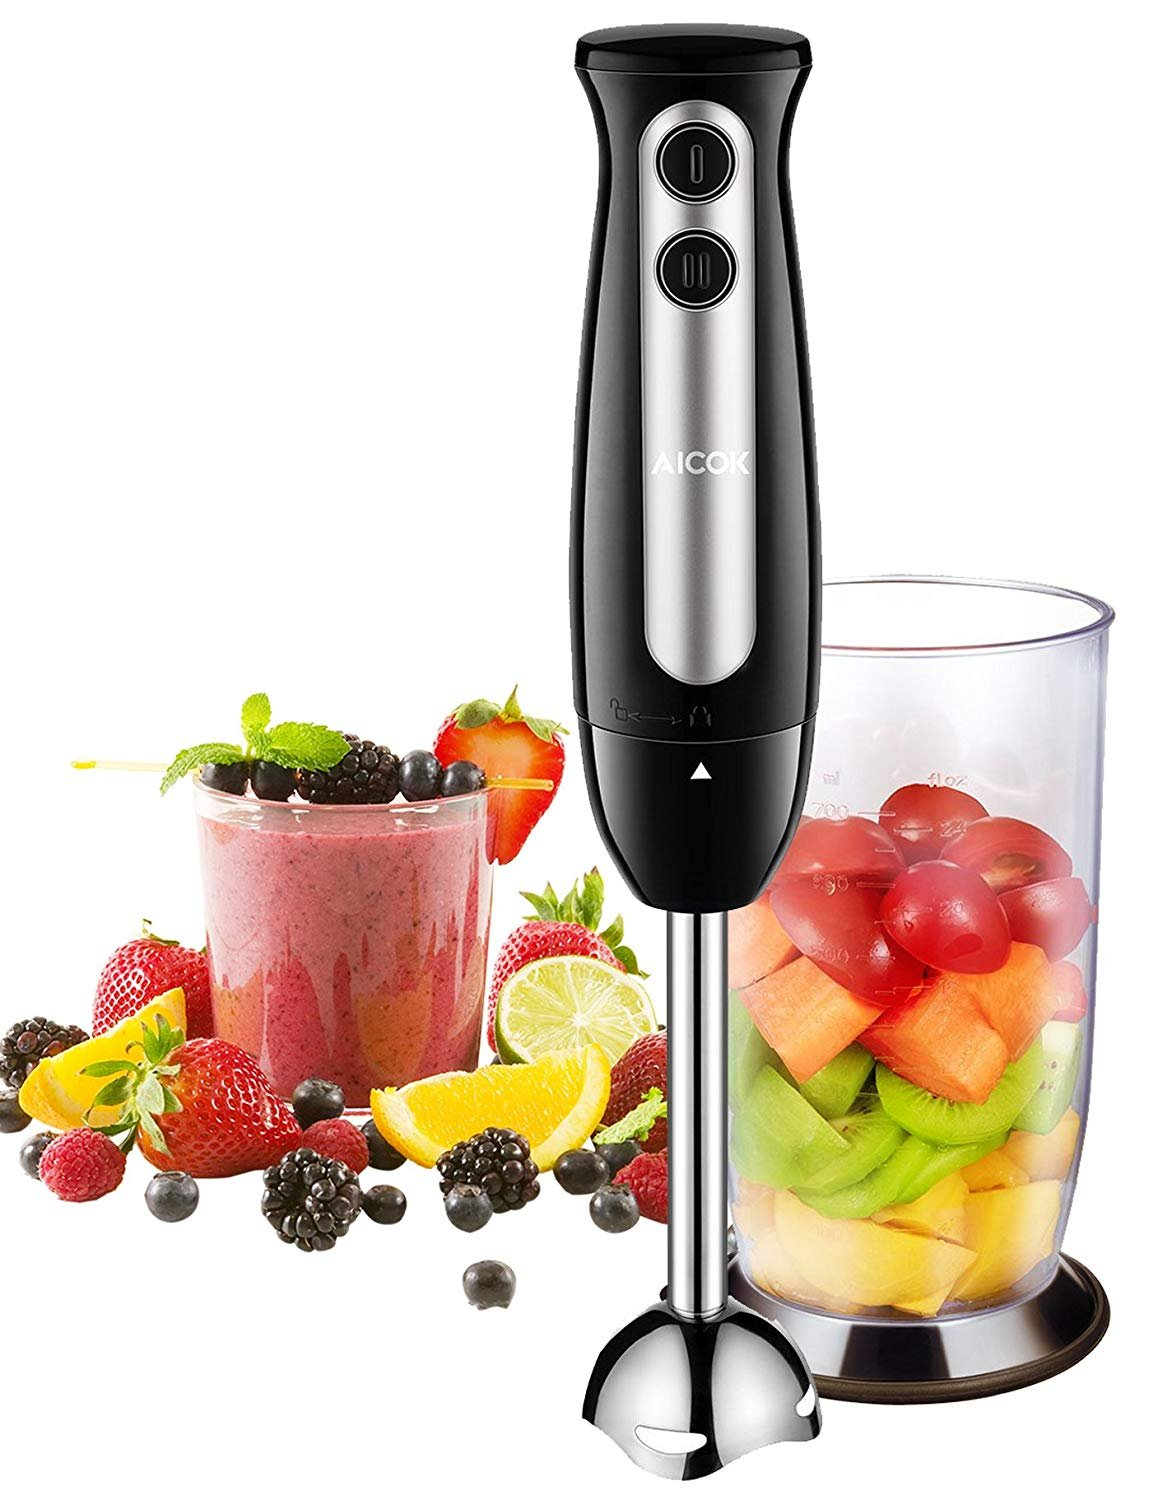 Hand Blender, 2-in-1 Multi-Purpose Powerful Immersion Blender Stick Mixer with 2-Speed Control Includes 700ml BPA-Free Mixing Beaker Stainless Steel Blades Detachable Shaft, Black